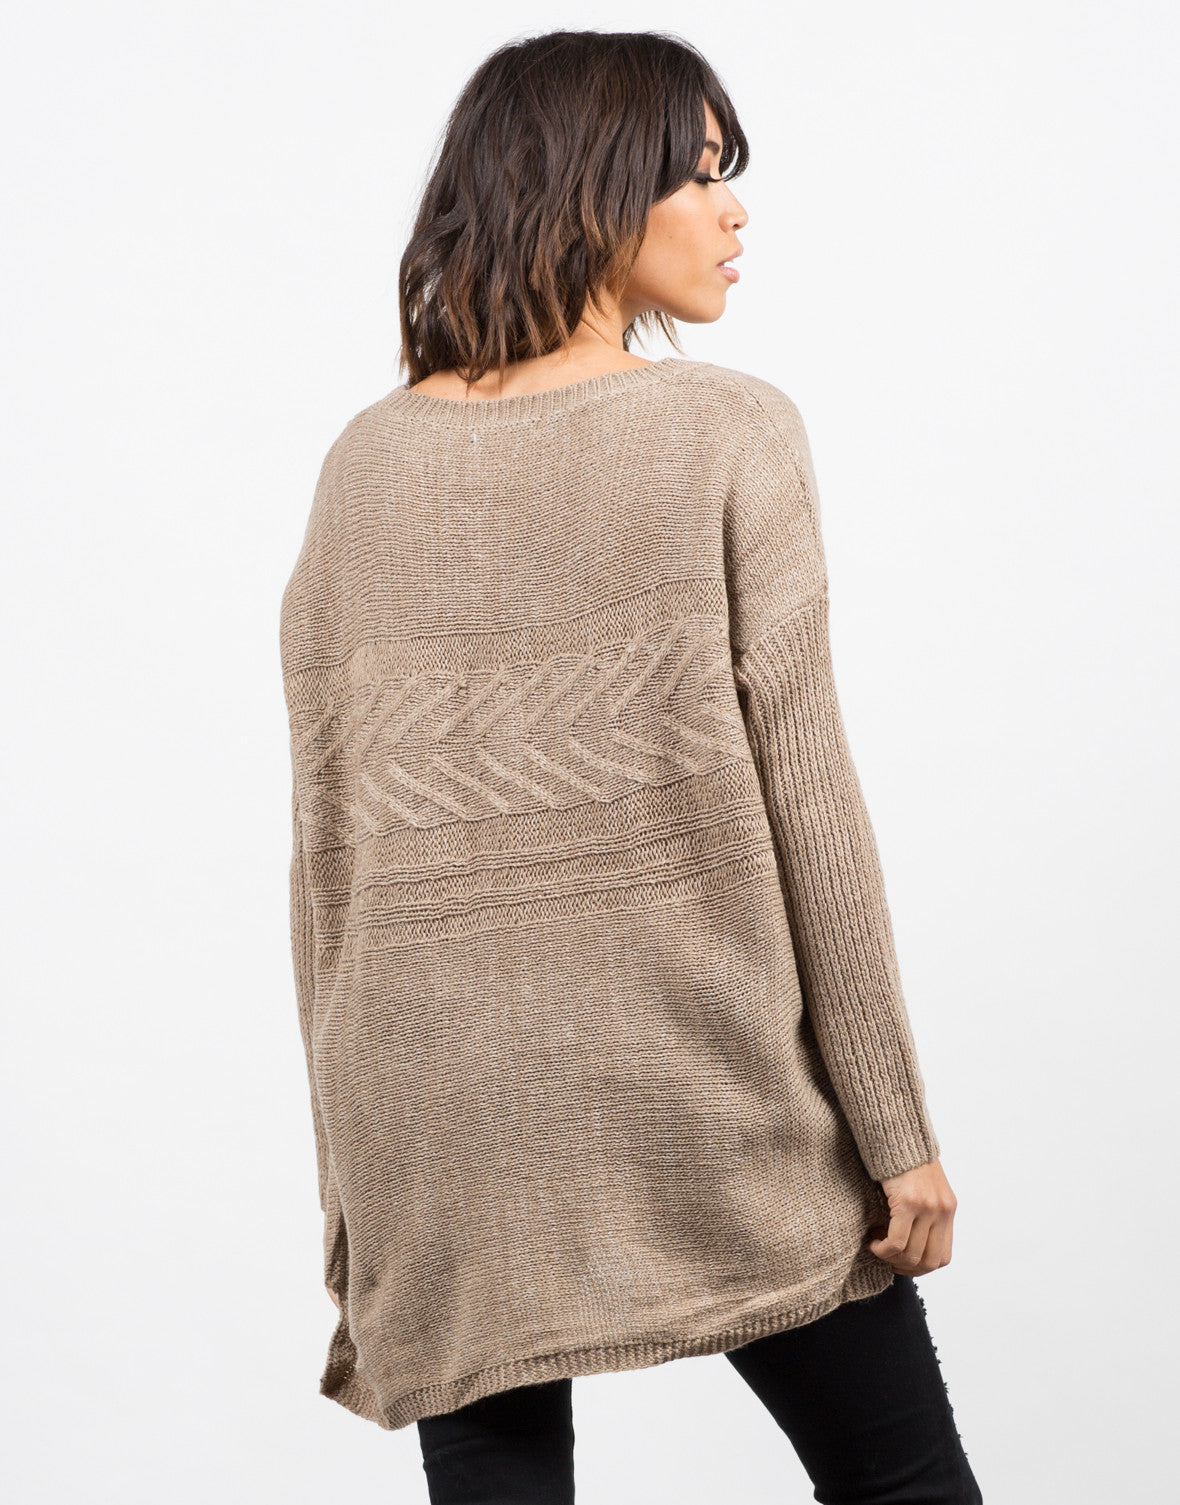 Back View of Lightweight Oversized Knit Sweater